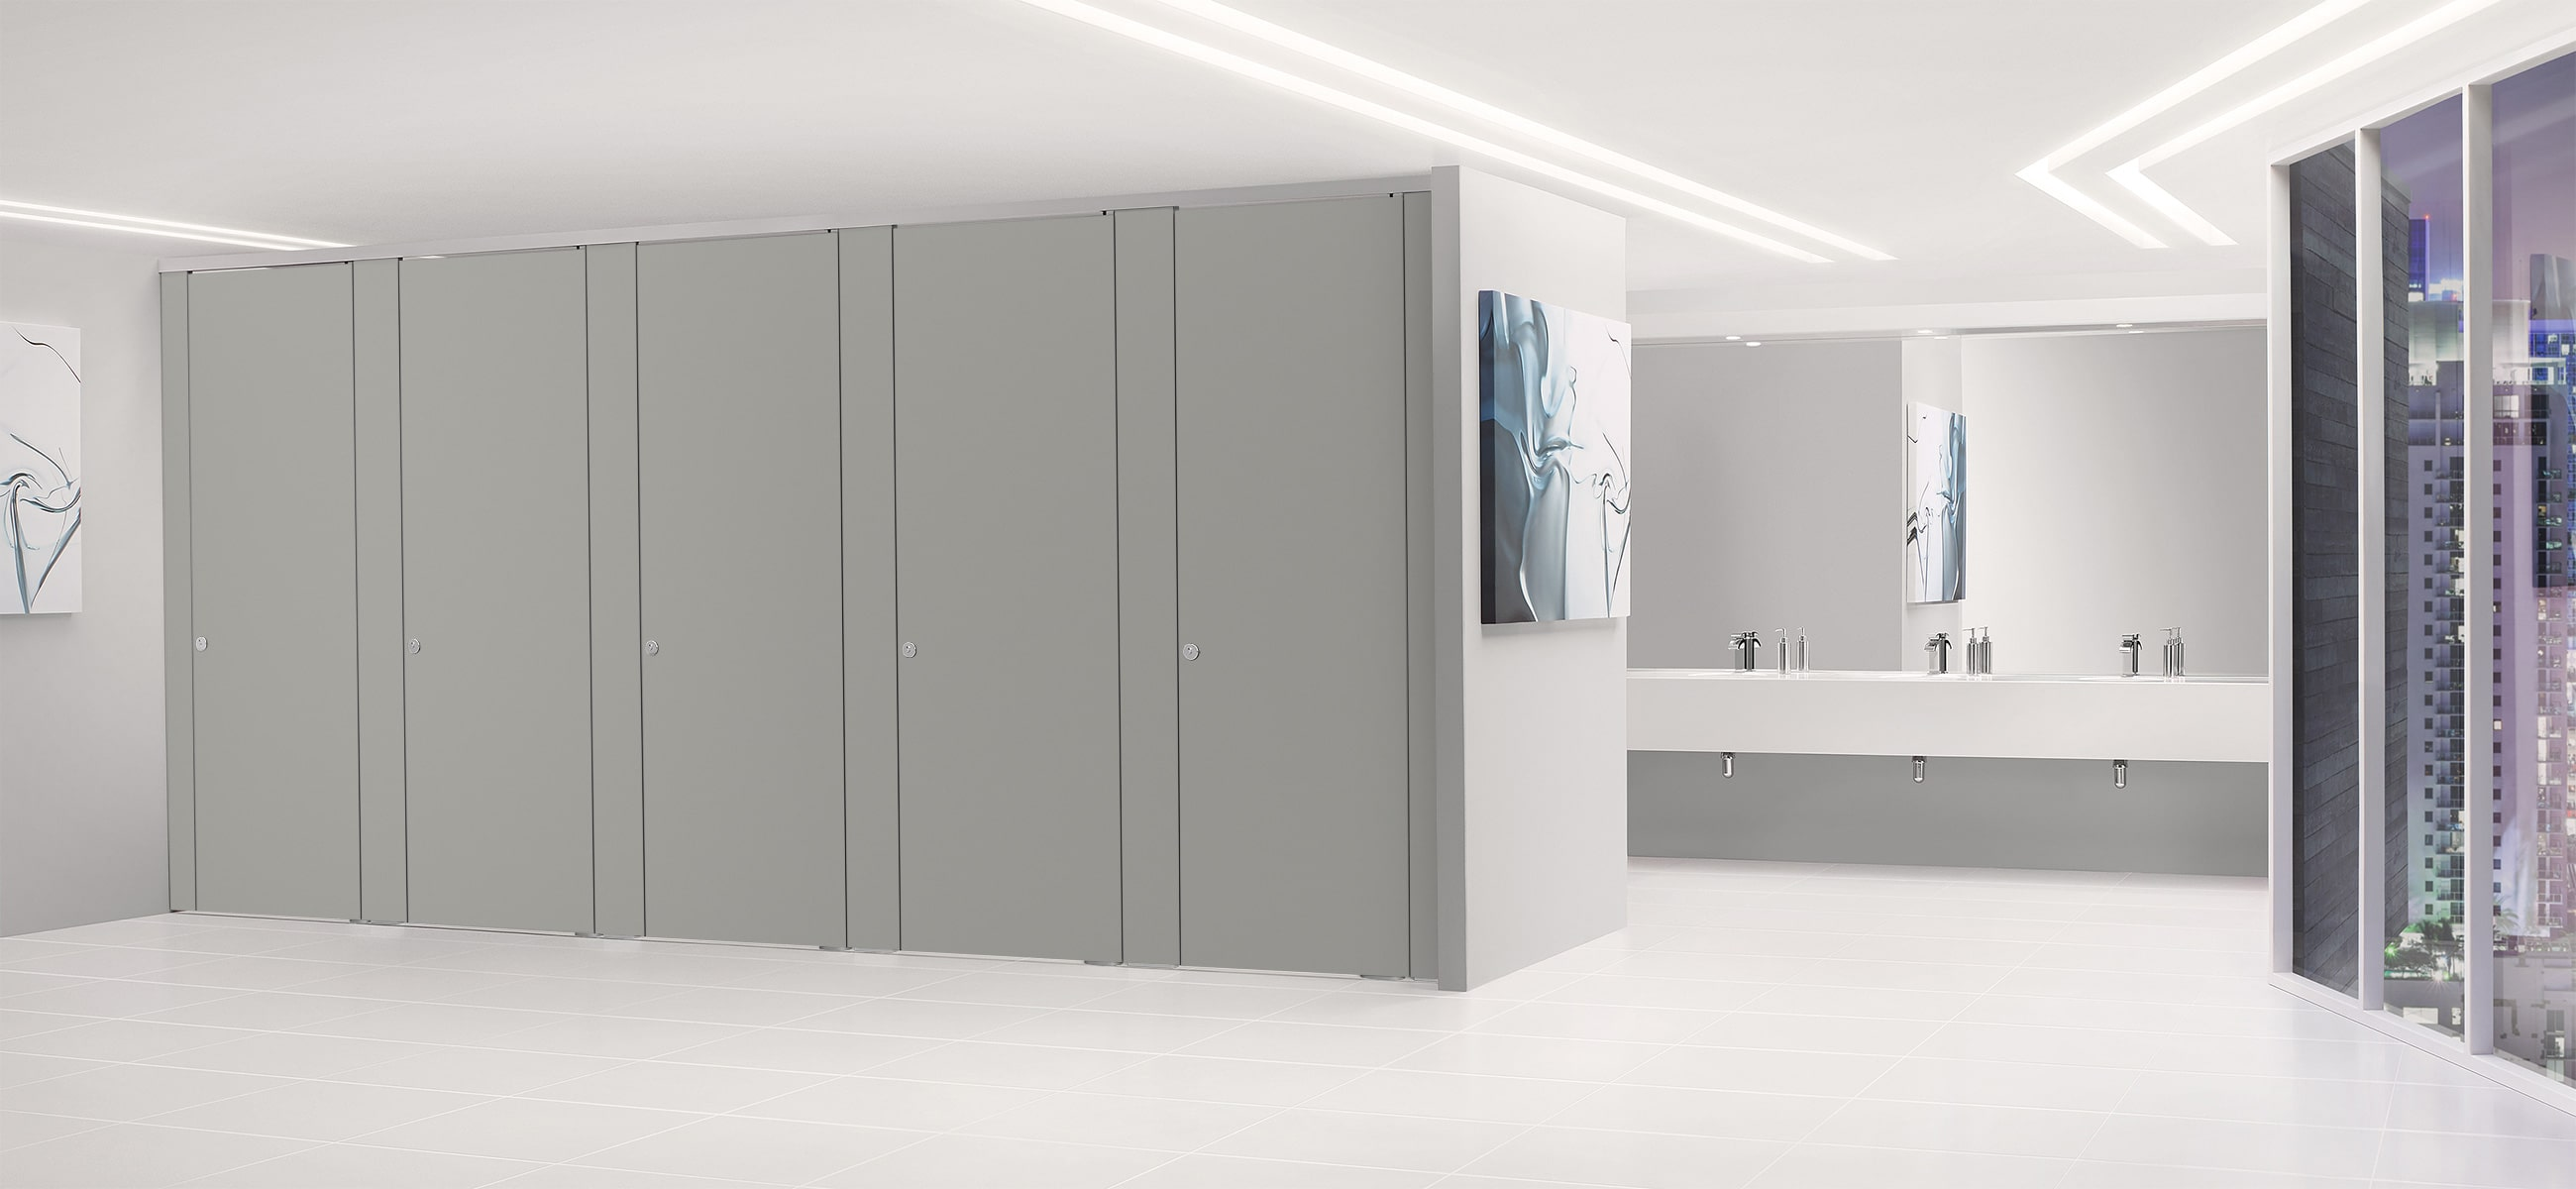 Sylan High Pressure Laminate Washroom Cubicles in Mercury